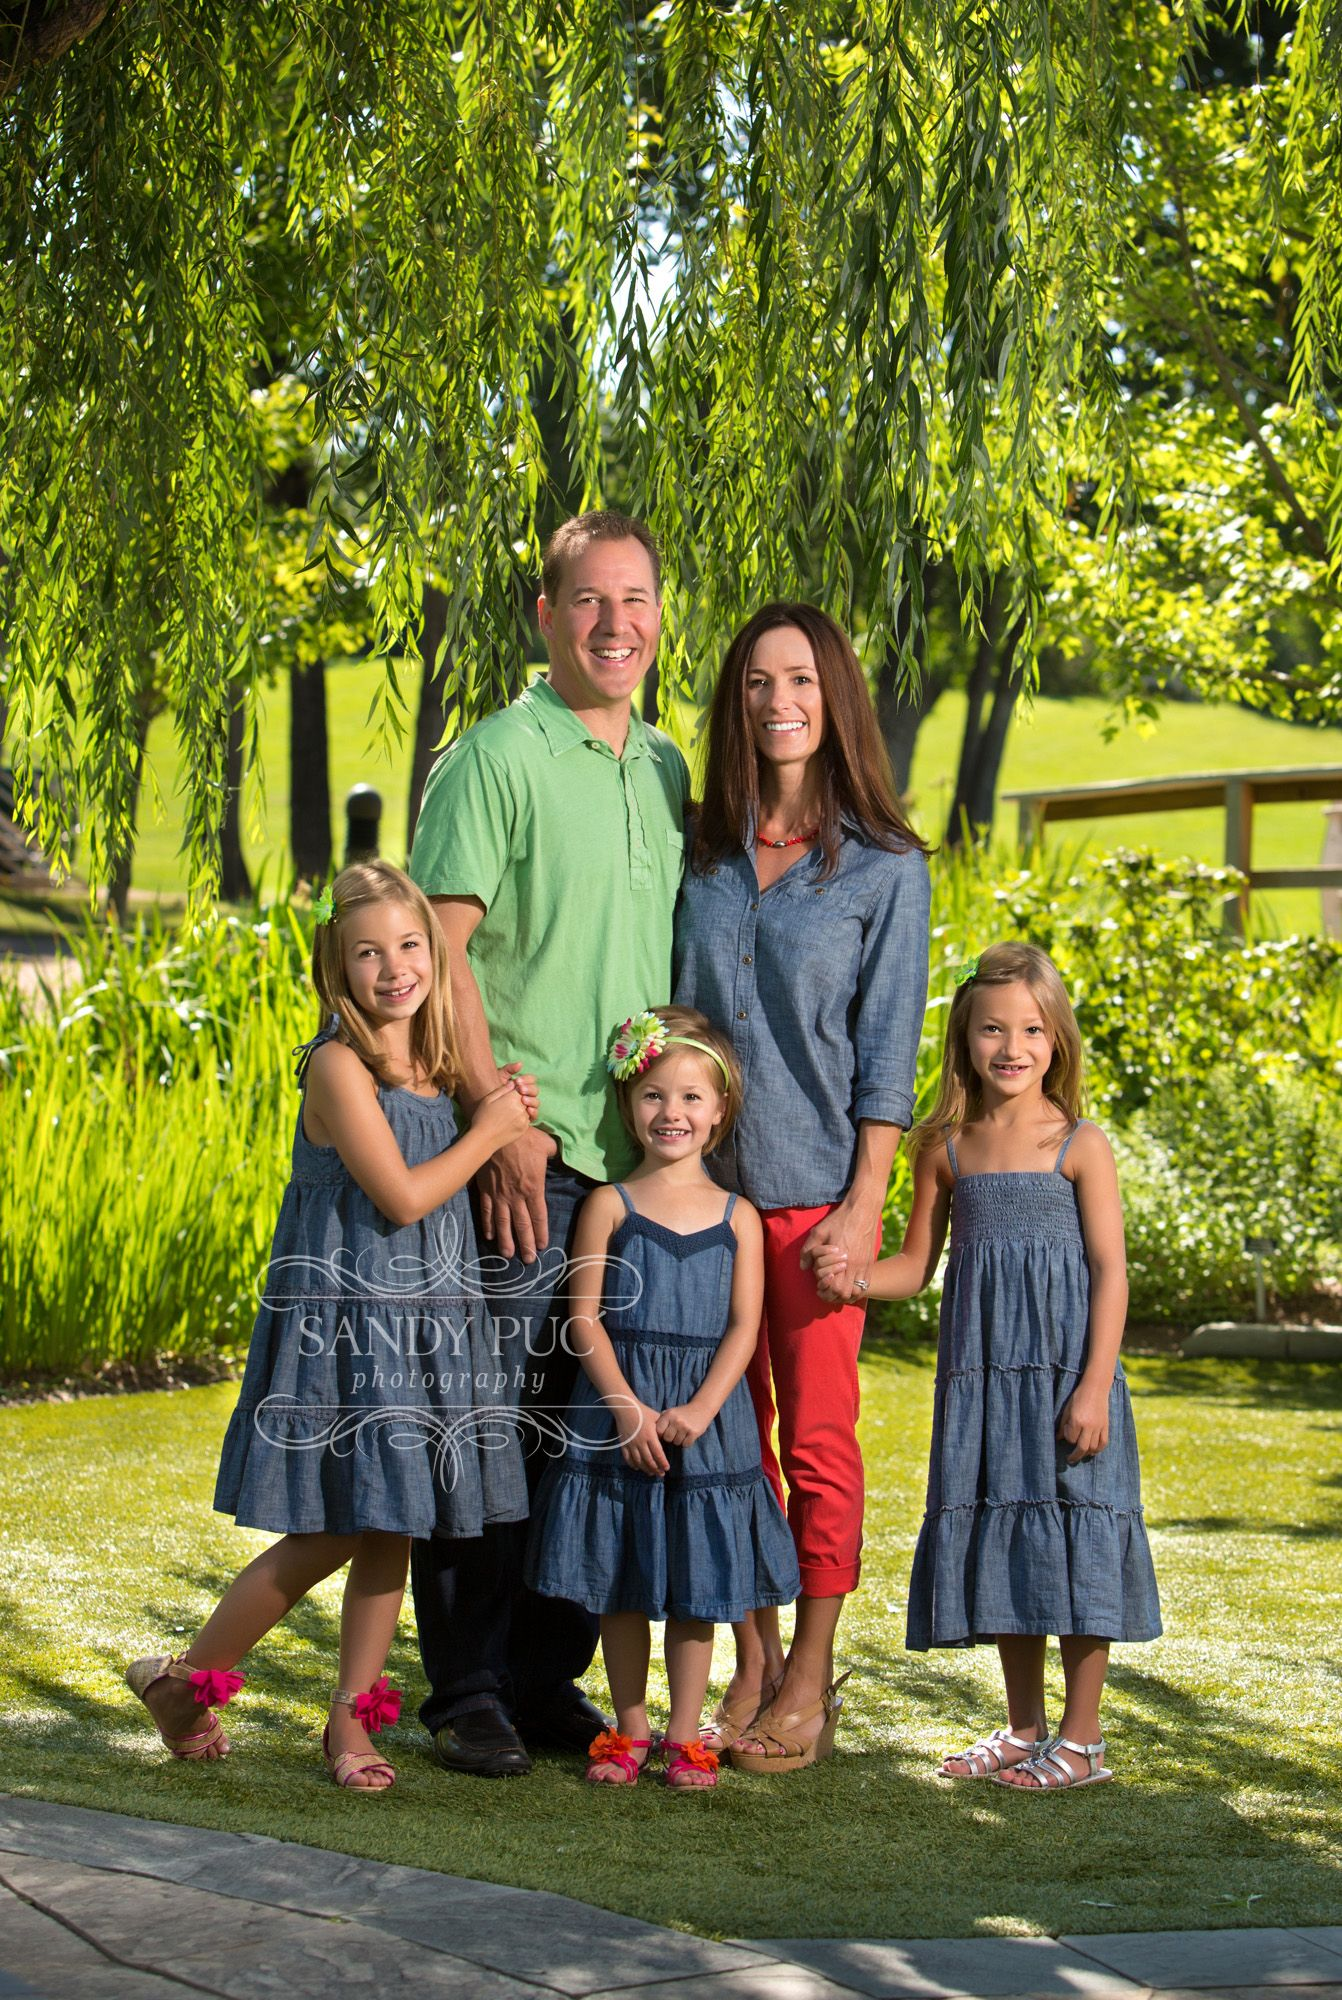 Family Portrait Clothing Summer Outdoor